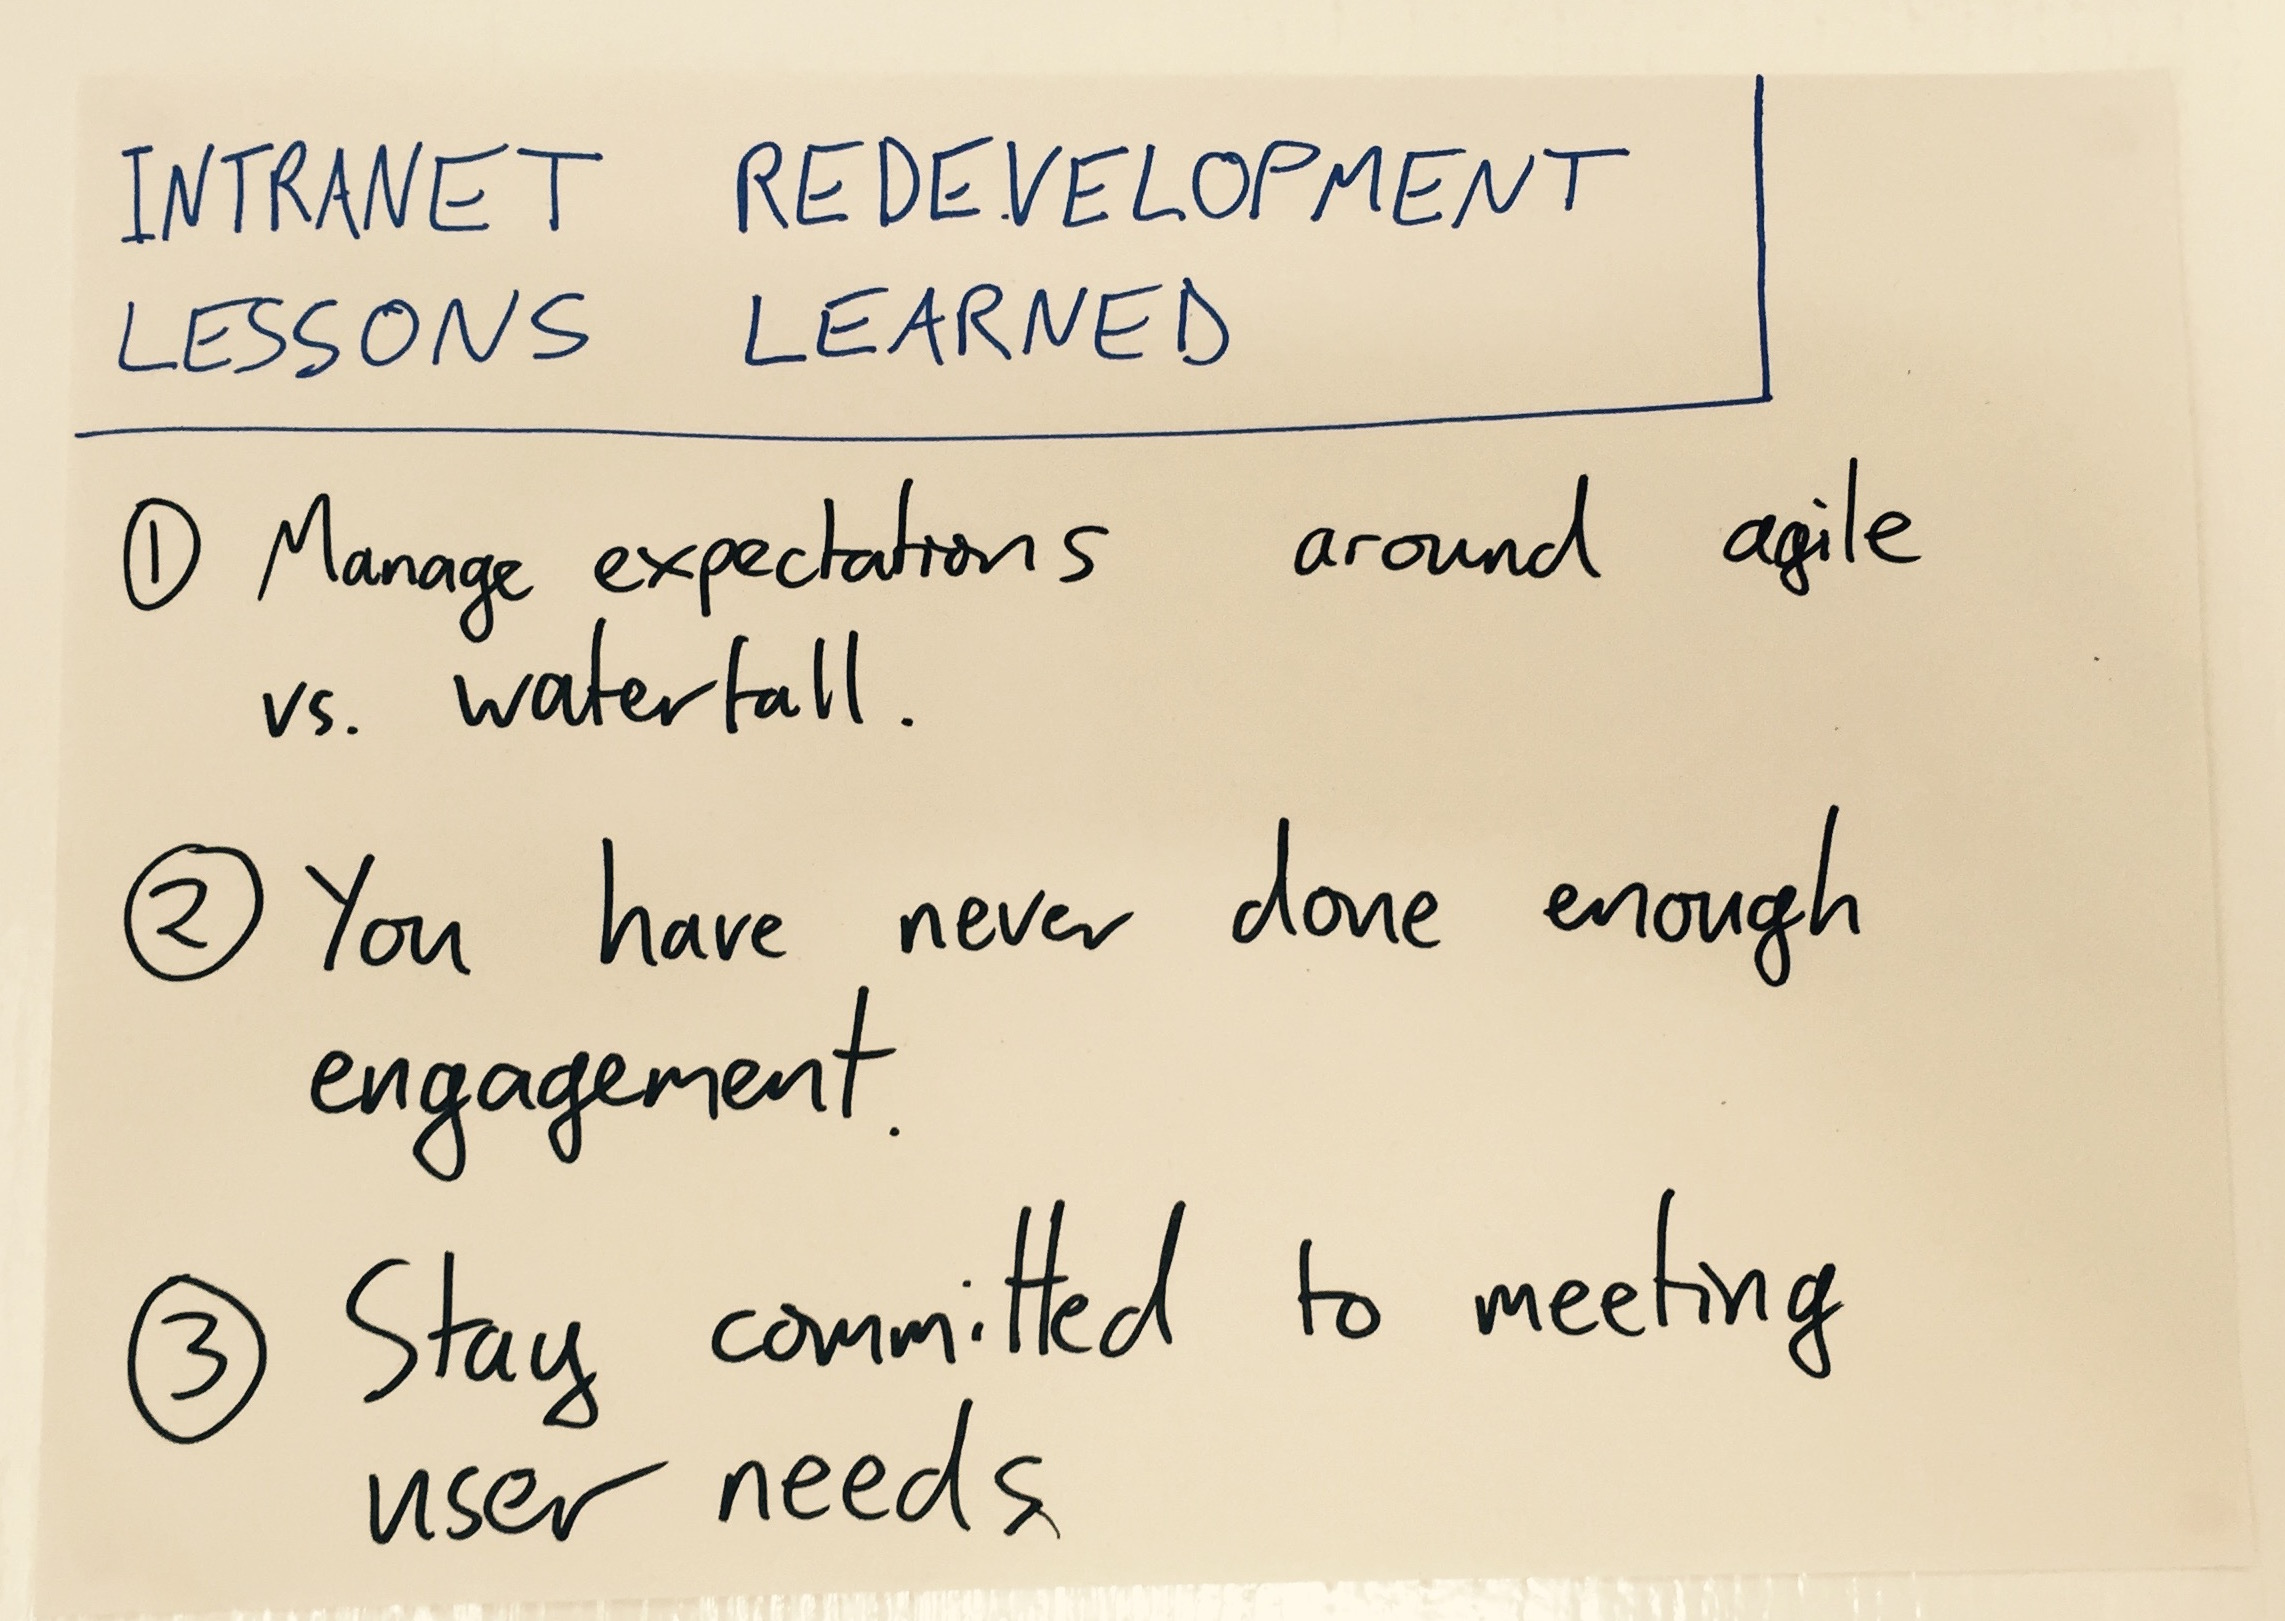 dh intranet lessons learned